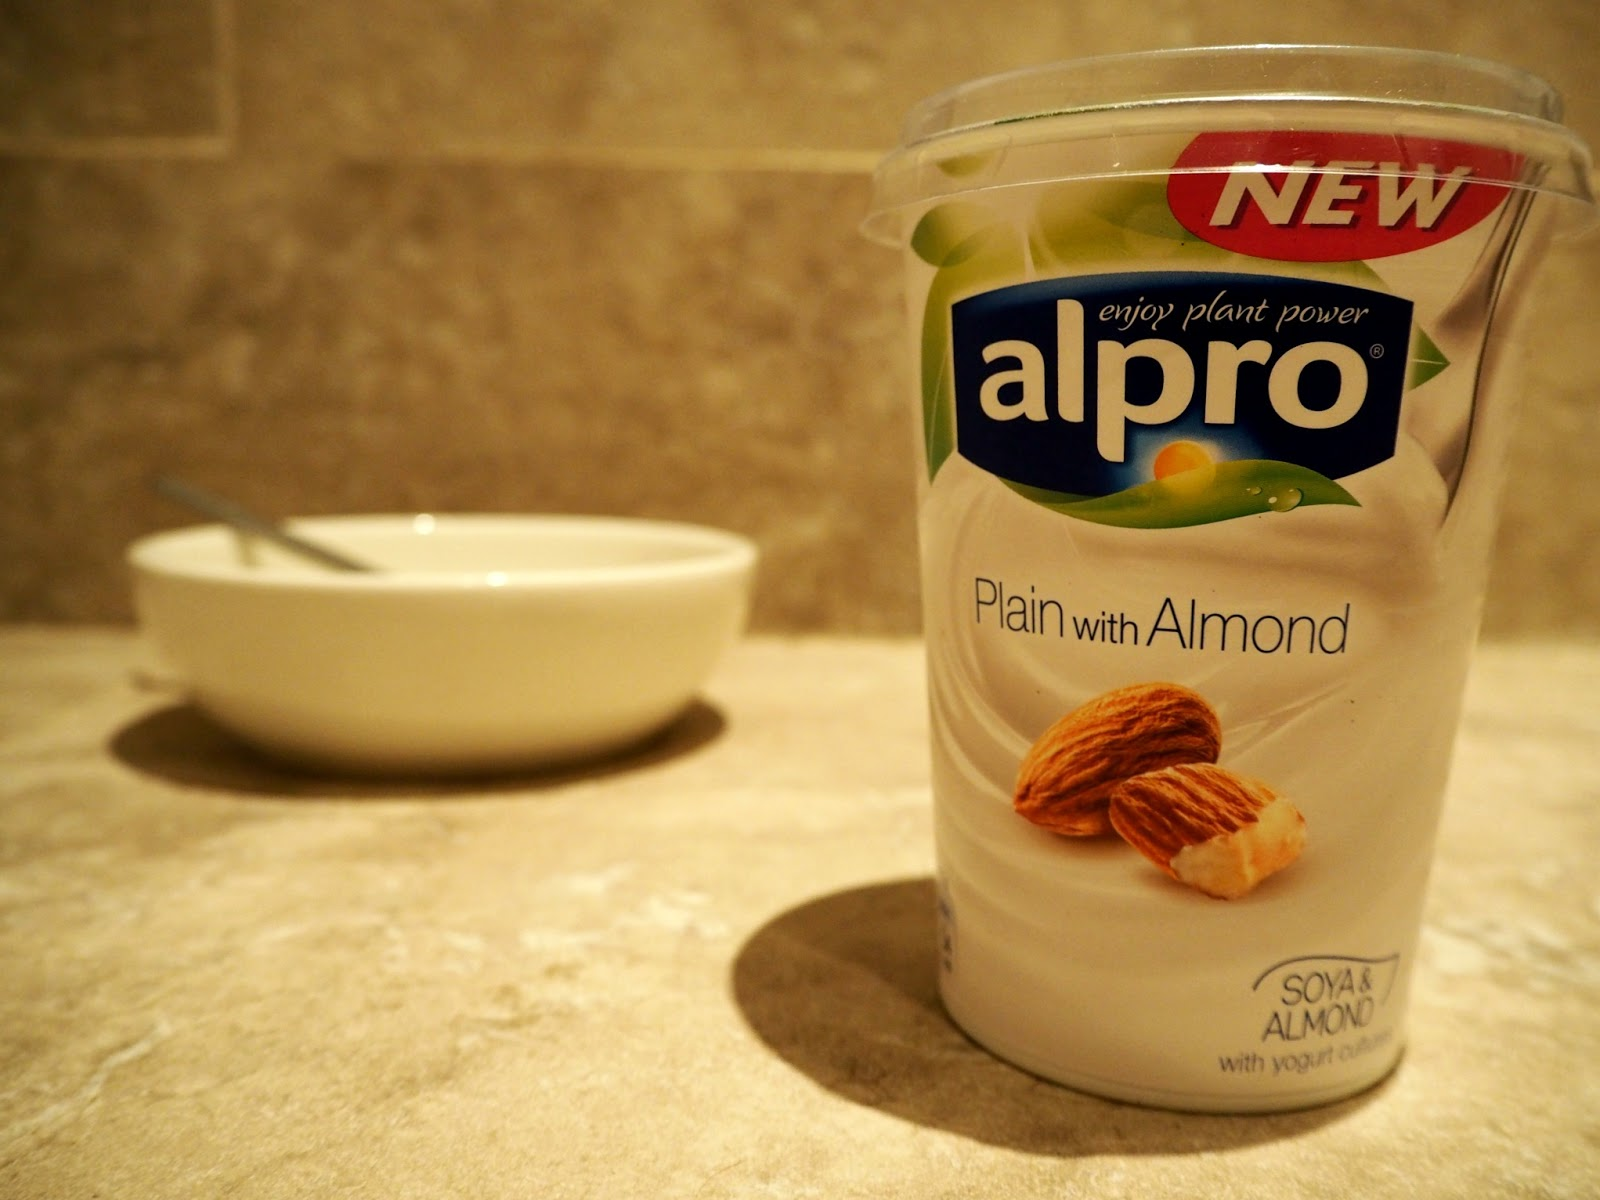 Bottle of alpro yoghurt